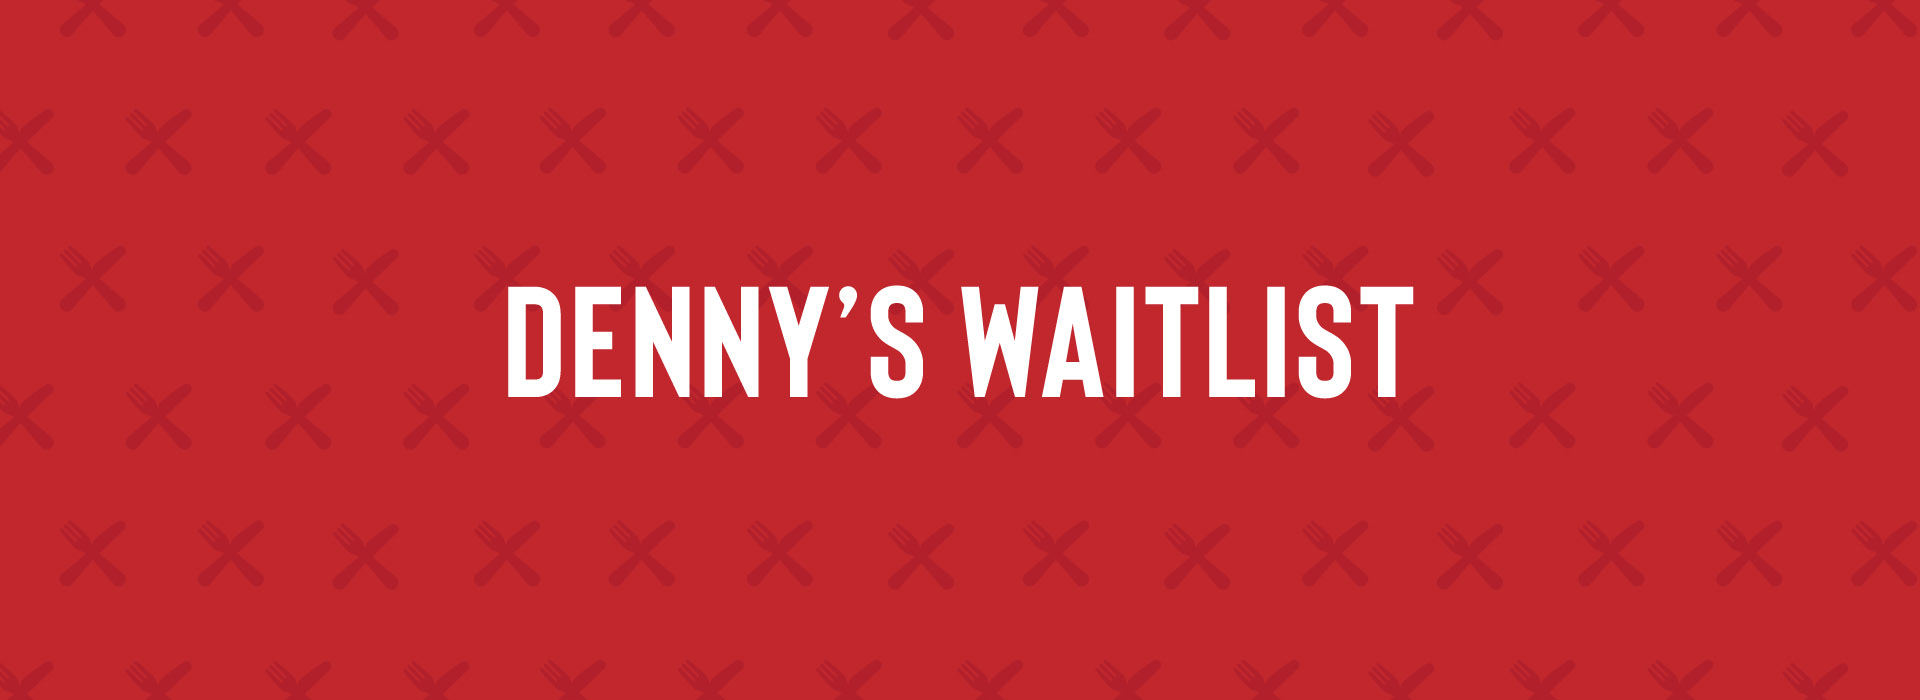 Introducing Denny's Waitlist